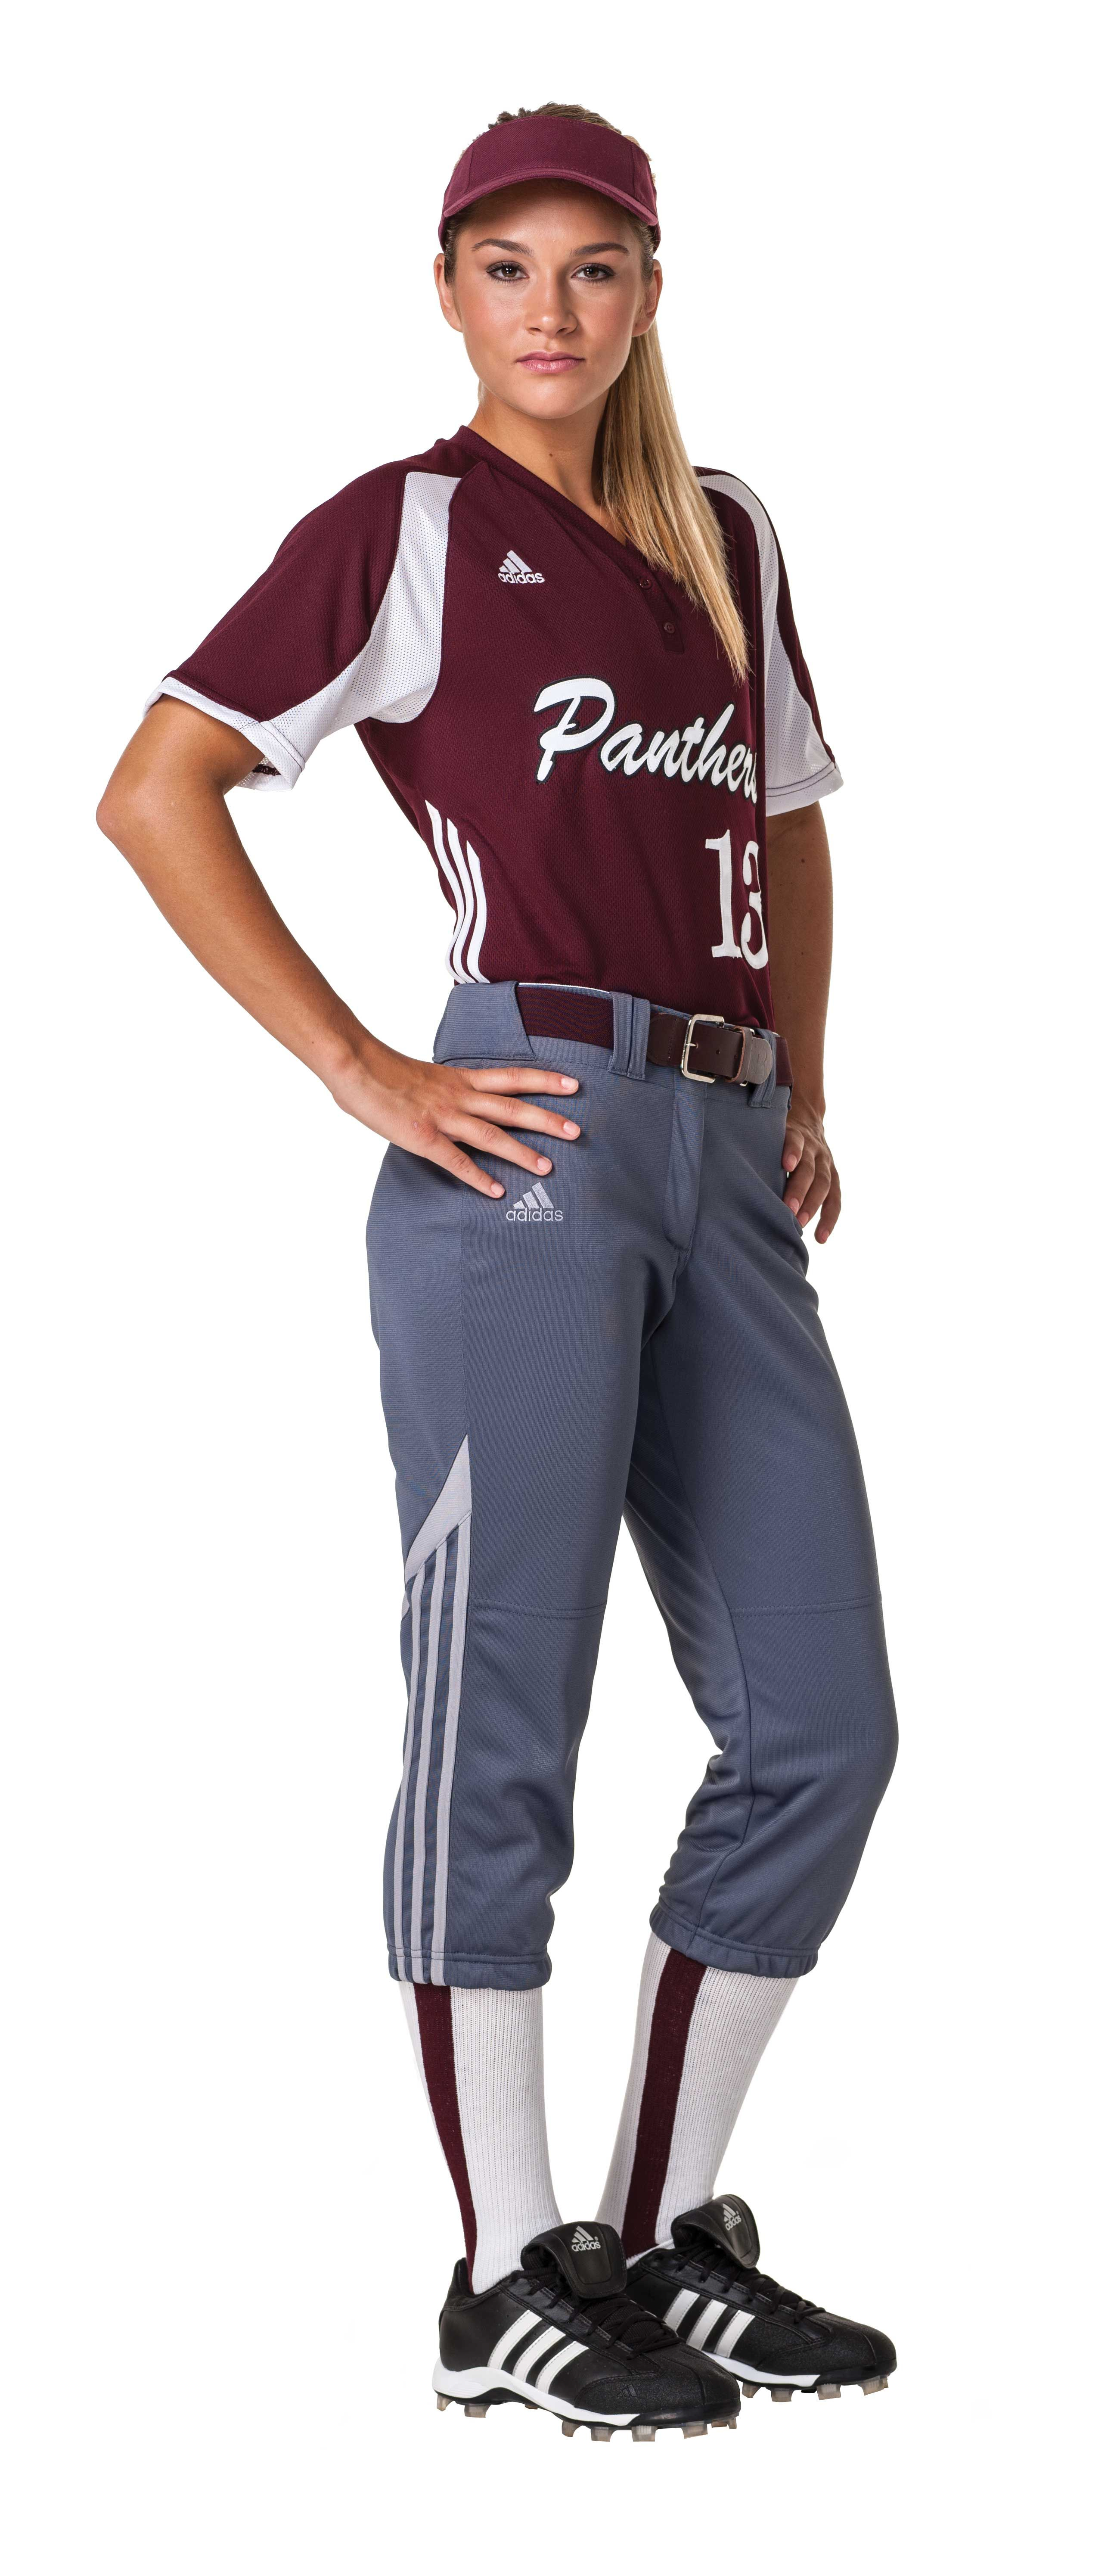 7cc8693e696d Adidas Diamond Queen Jersey and Pant  Softball  Fastpitch  women  girl   uniform  jersey